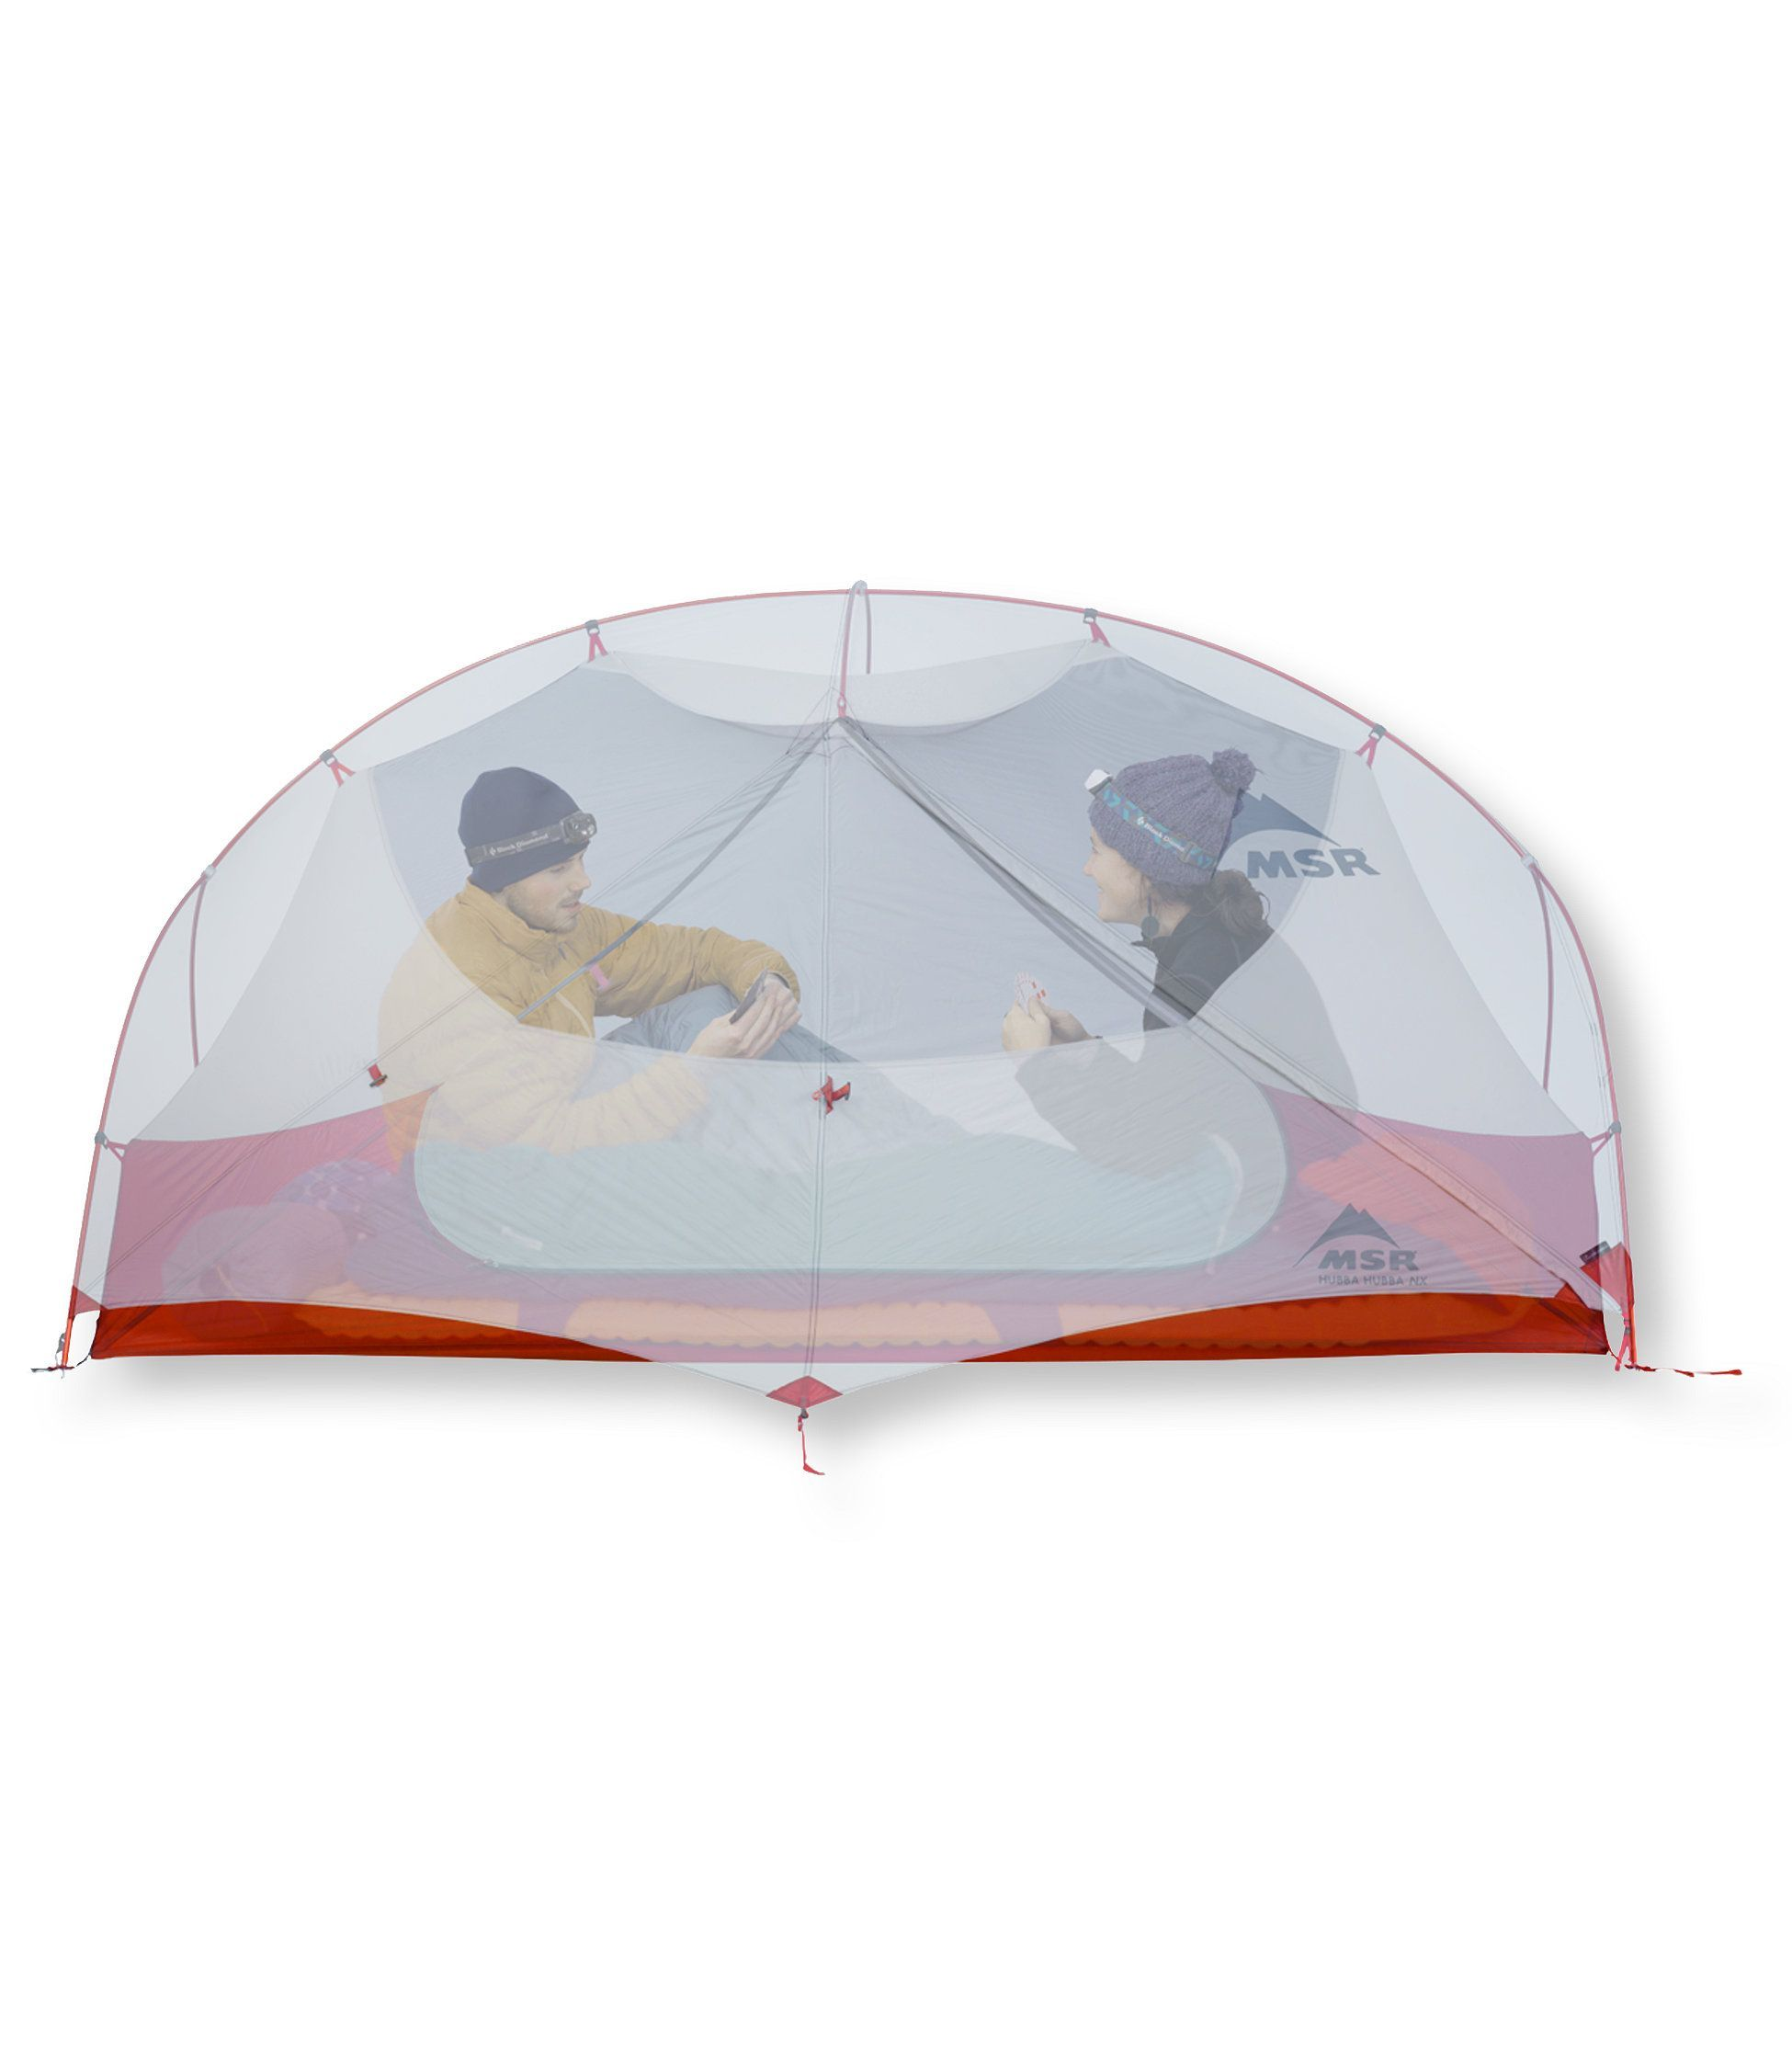 Msr Hubba Nx 2 Person Tent 2 Person Tent Tent Two Person Tent